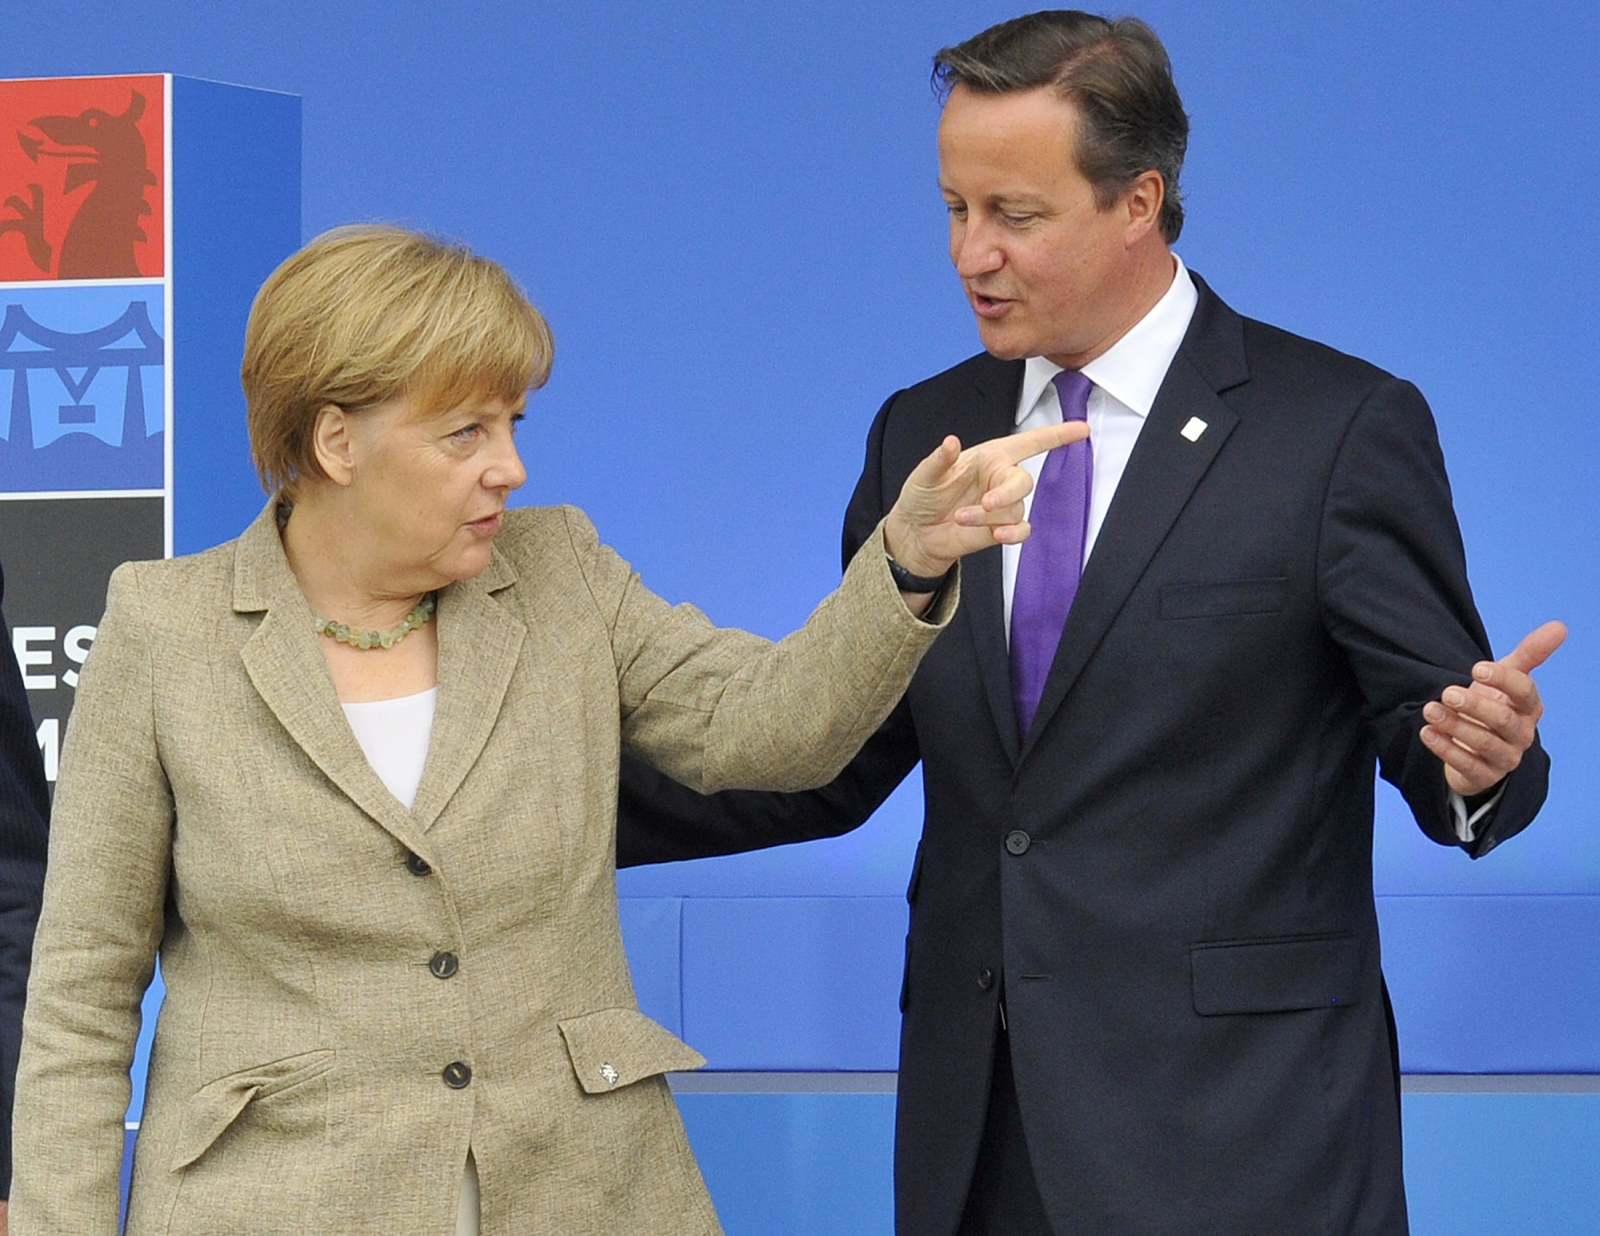 Britain's Prime Minister David Cameron (R) greets German Chancellor Angela Merkel